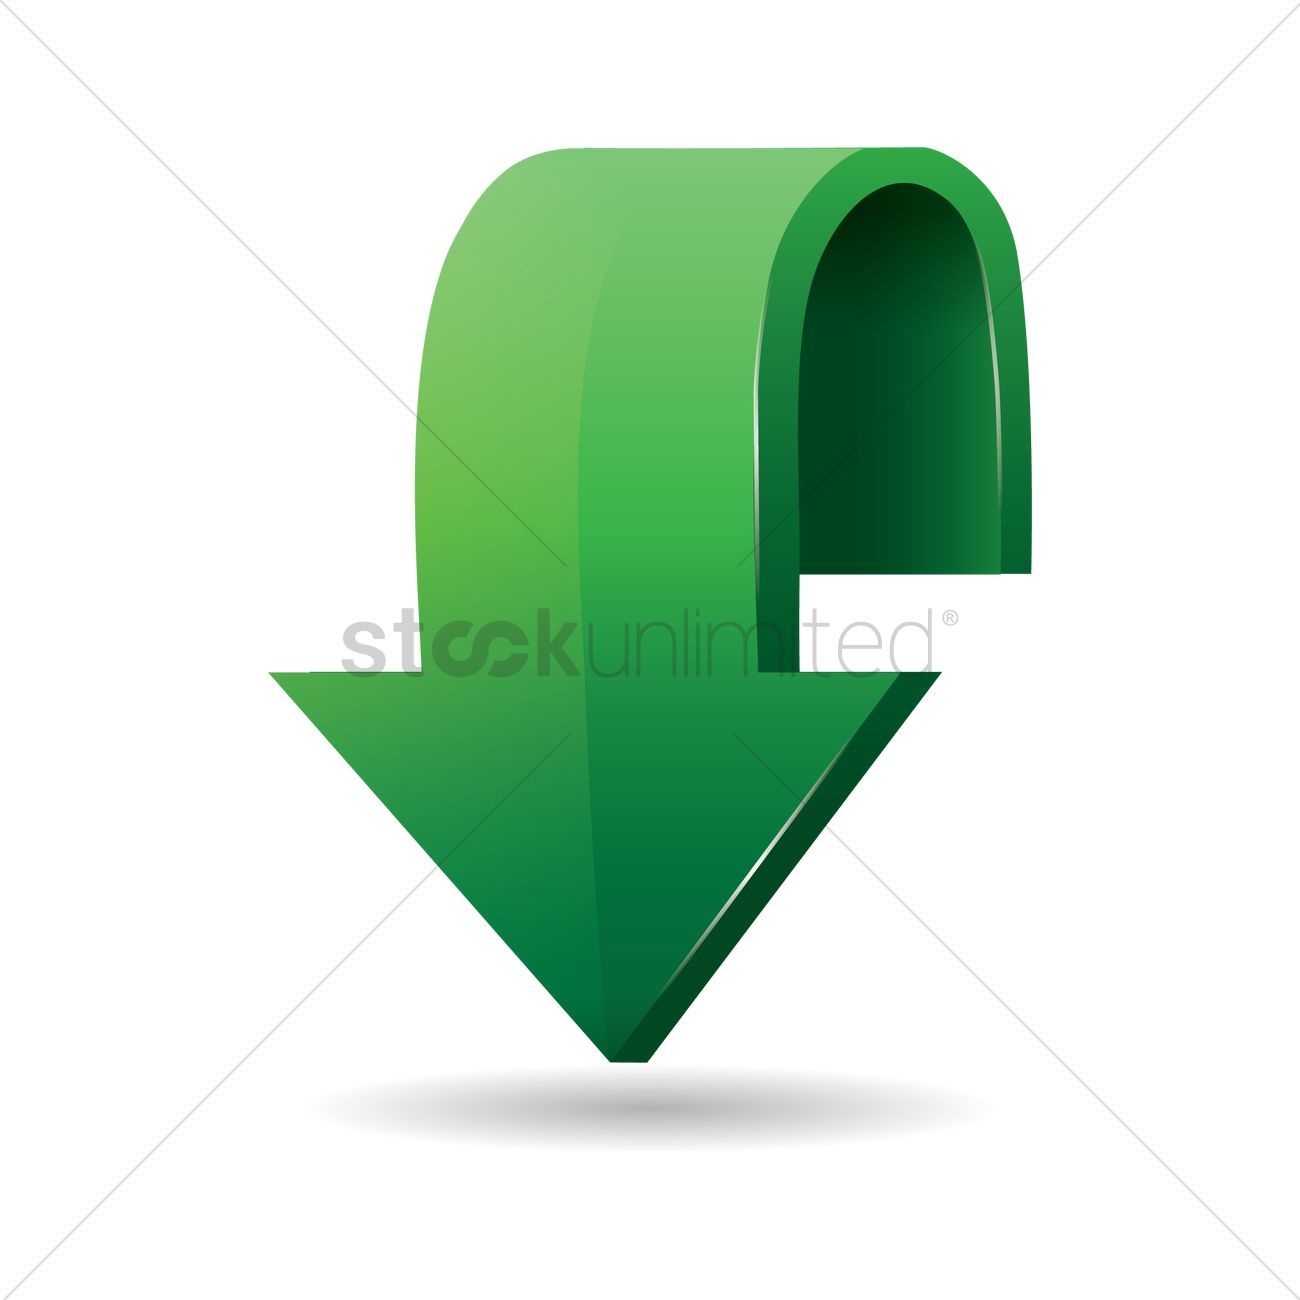 Arrow Pointing Down >> Arrow Pointing Down Vector Image 1870517 Stockunlimited